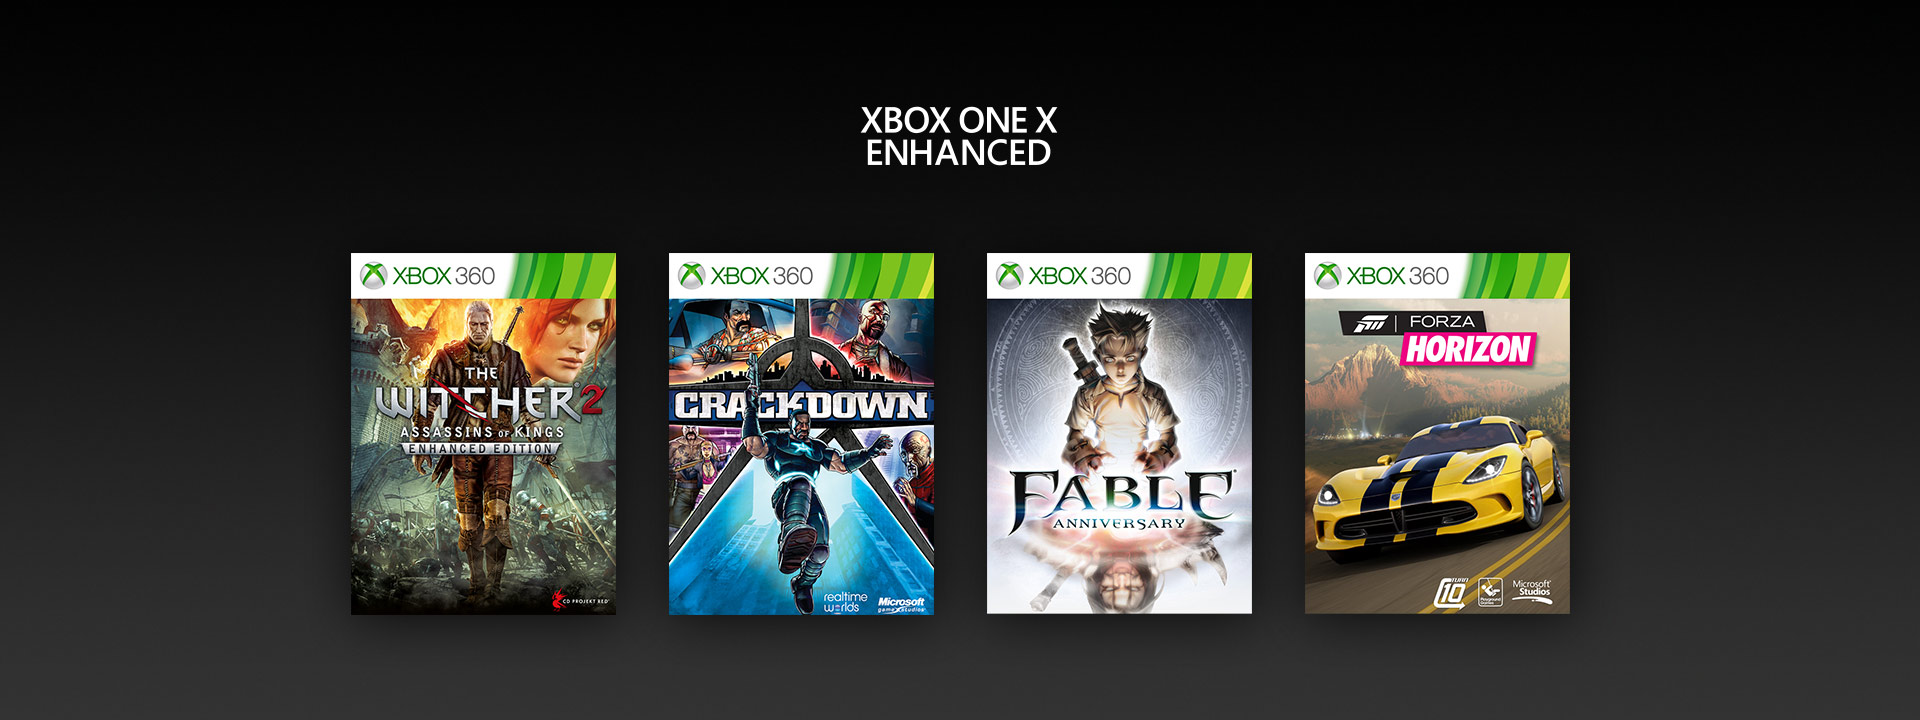 Xbox One X Enhanced logo - Witcher 2, Crackdown, Fable Anniversary, Forza Horizon boxshots